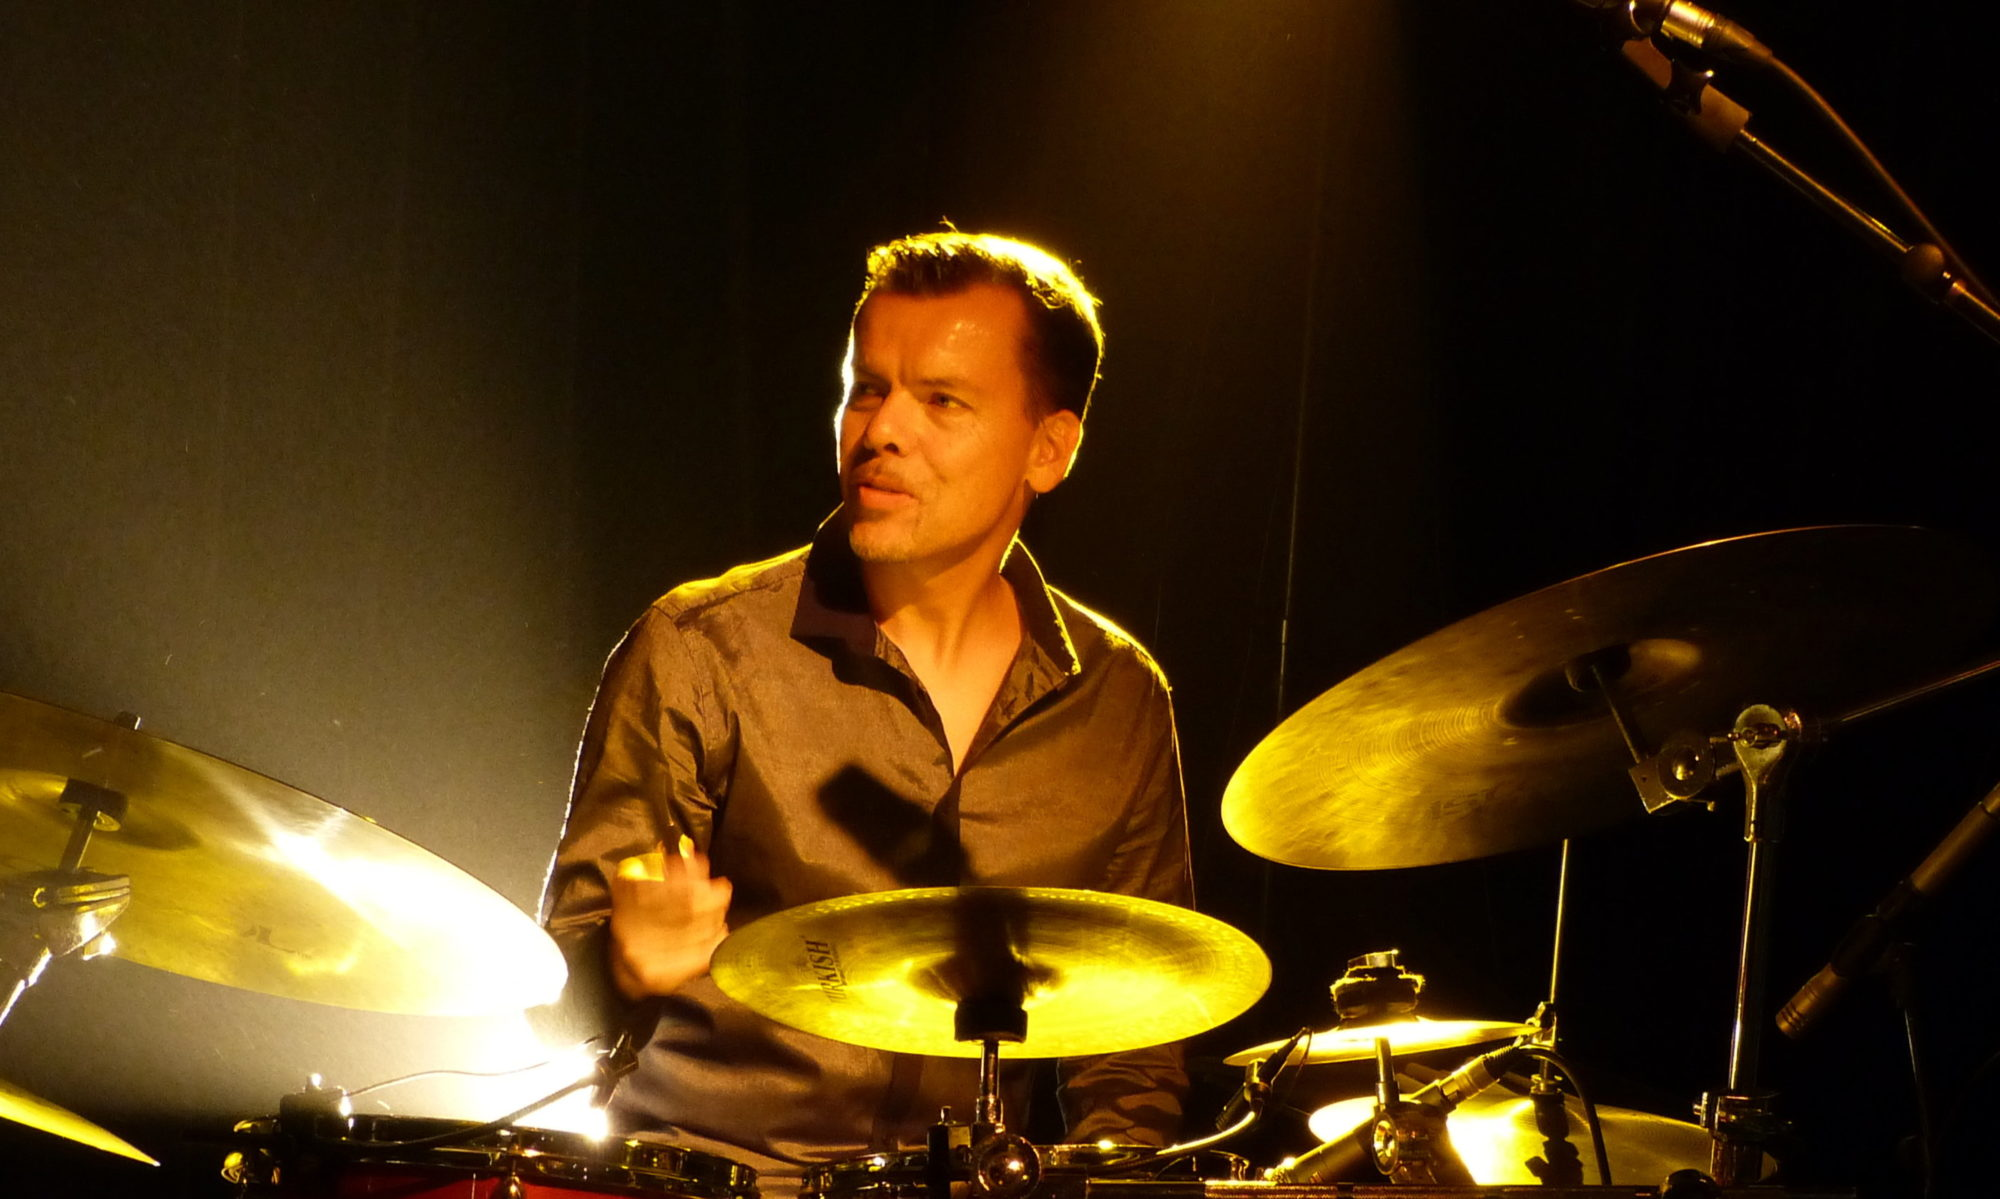 Laurent MEYER Drums